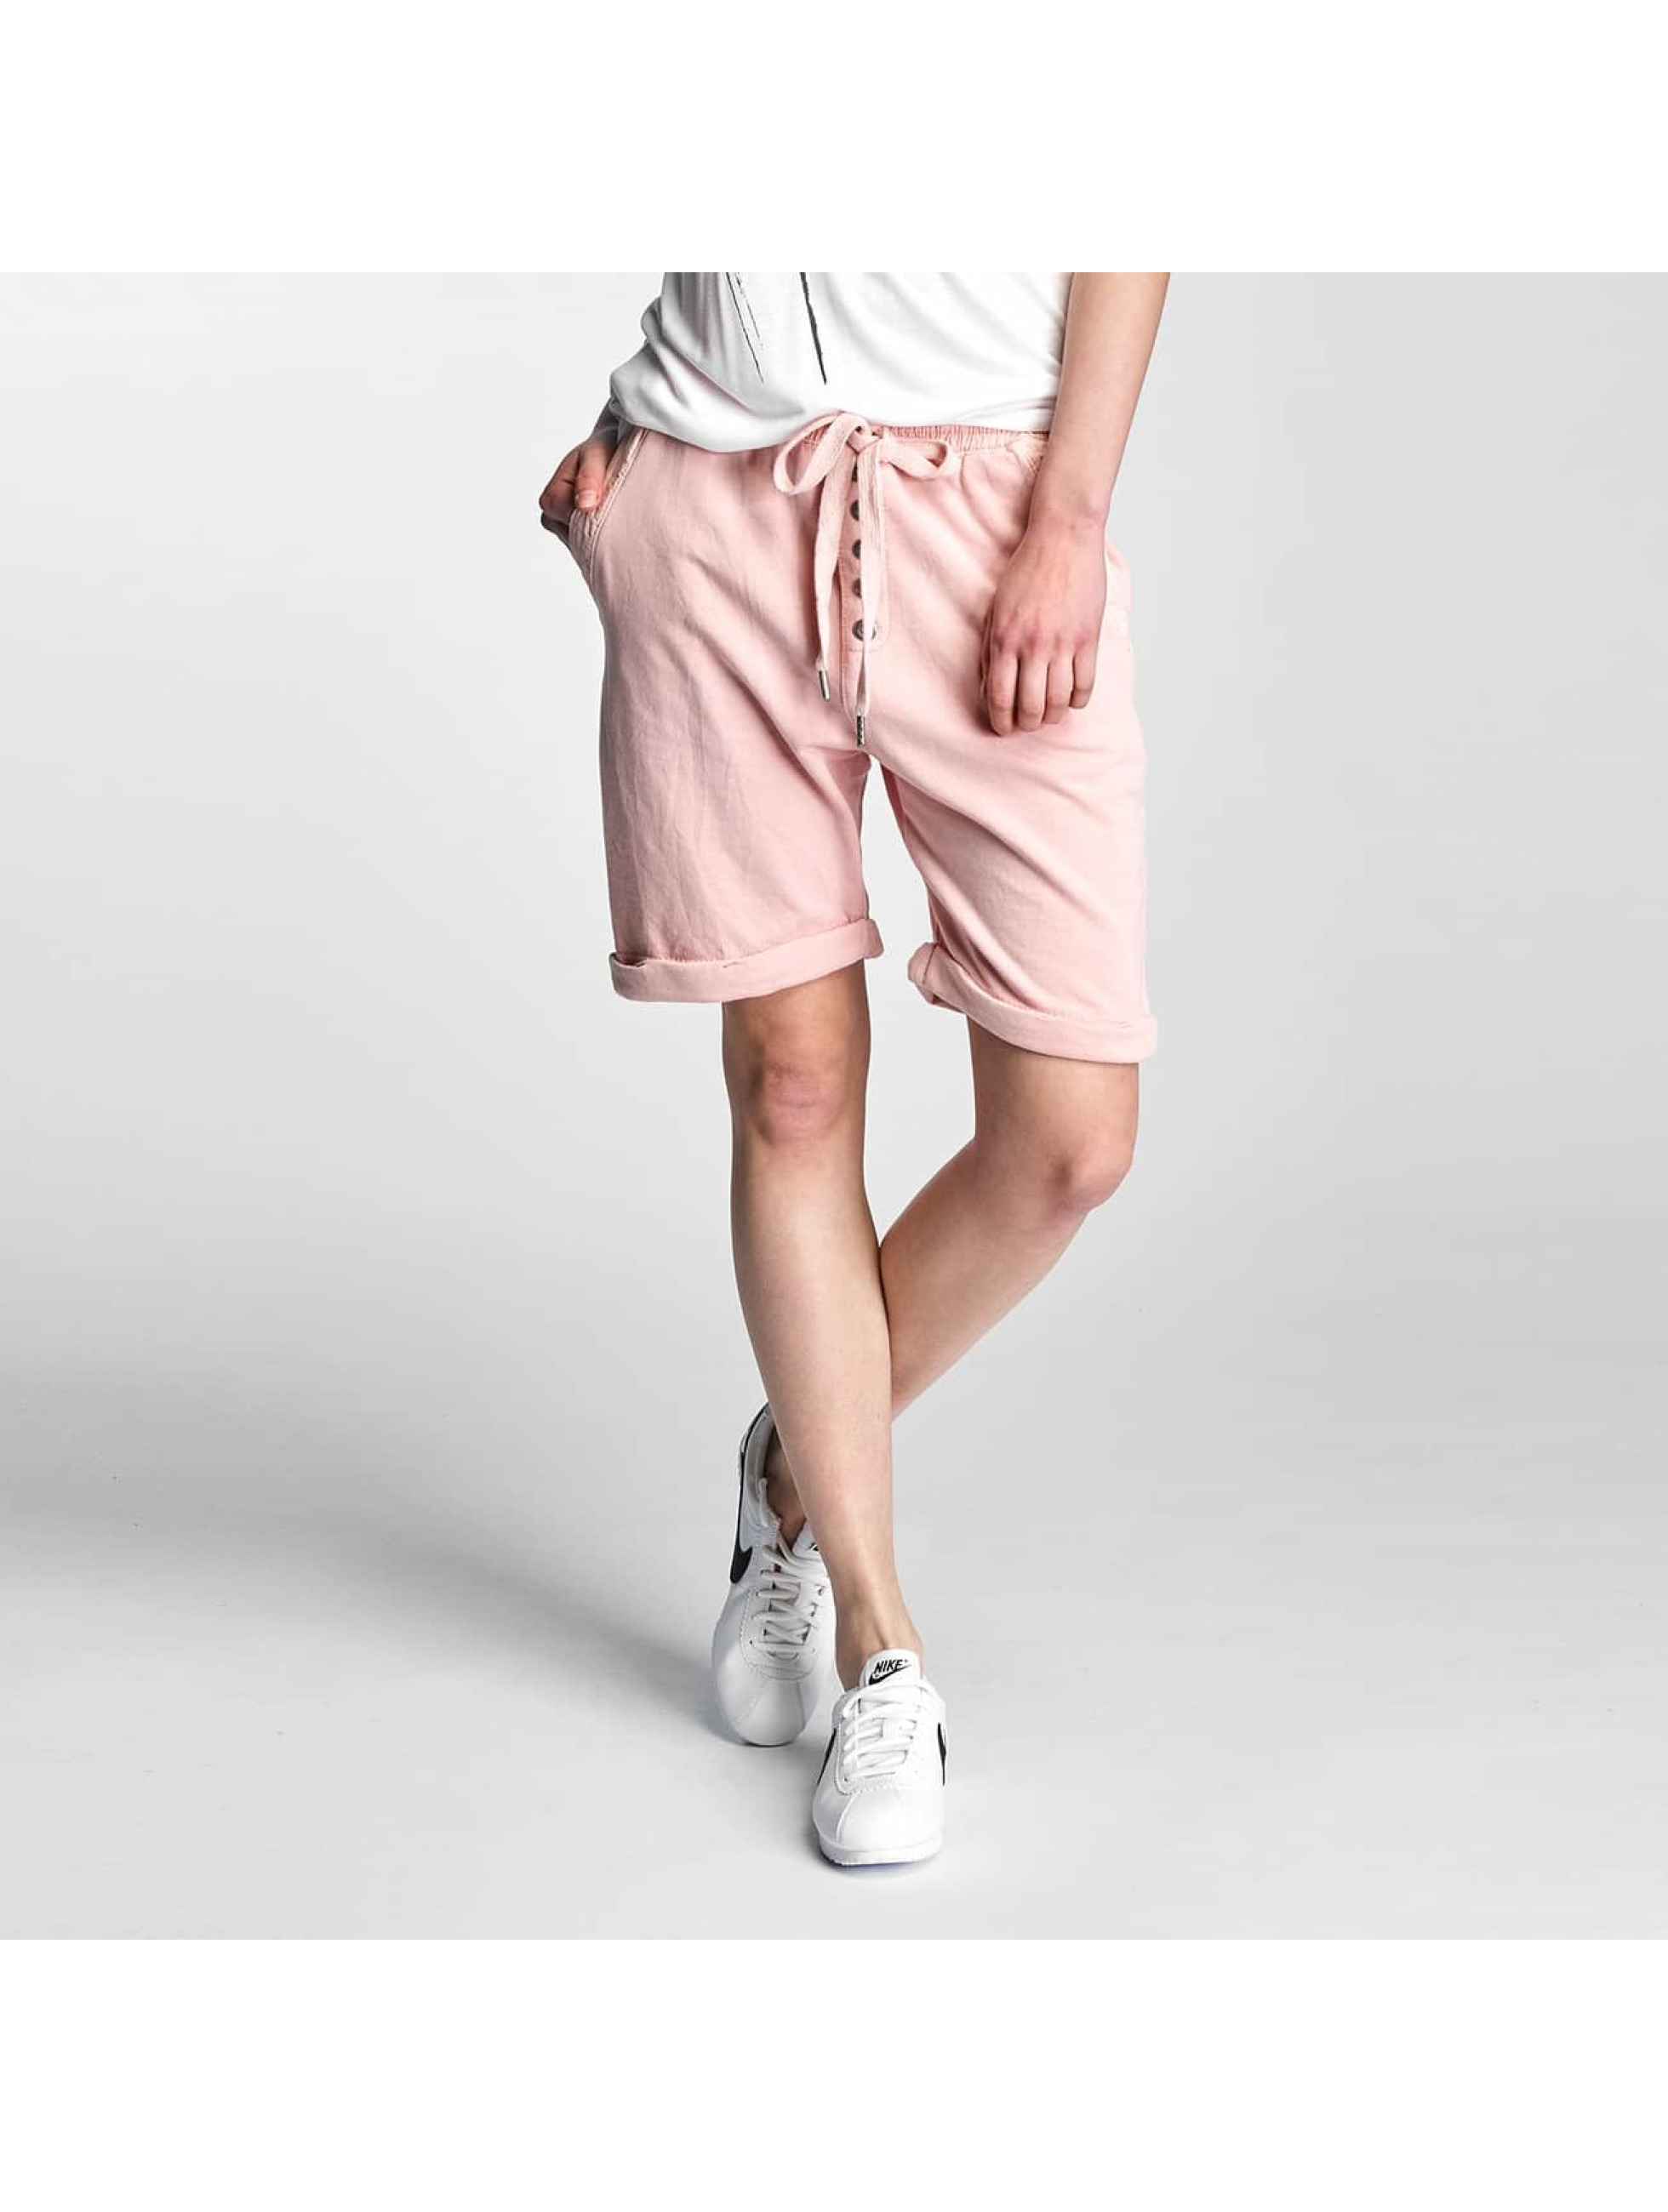 Stitch & Soul Frauen Shorts Sweat in rosa